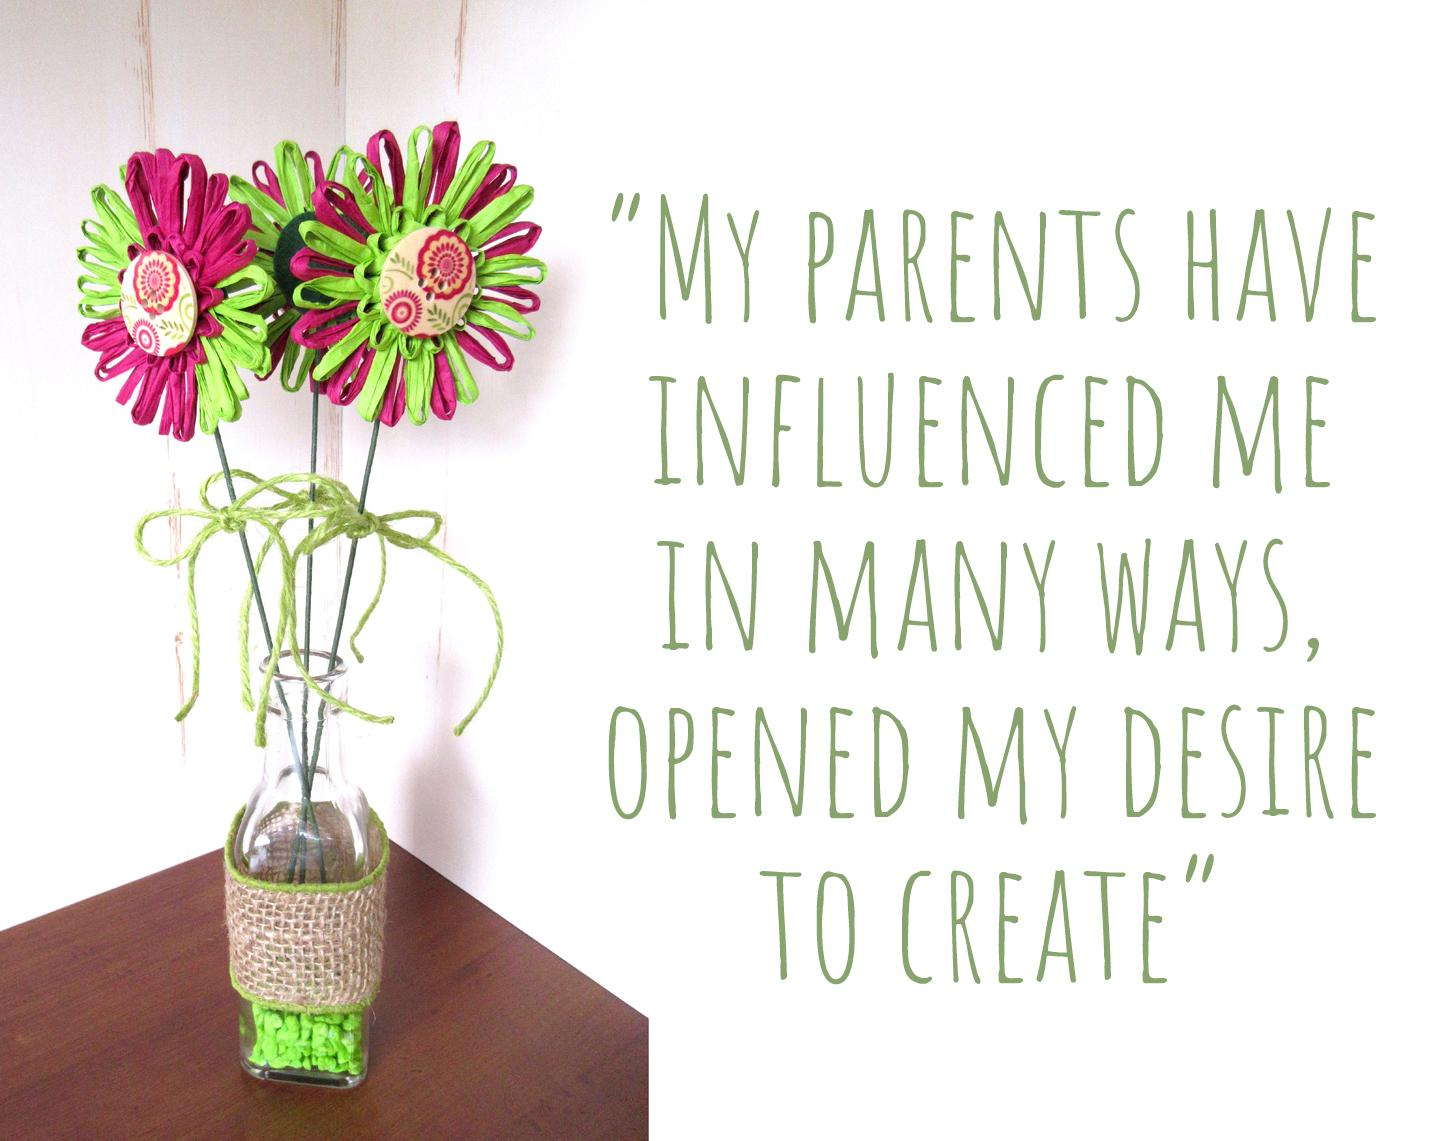 Three long stem lime green and magenta raffia flowers in a bottle by M Decor Botanica; 'My parents have influenced me in many ways, opened my desire to create'